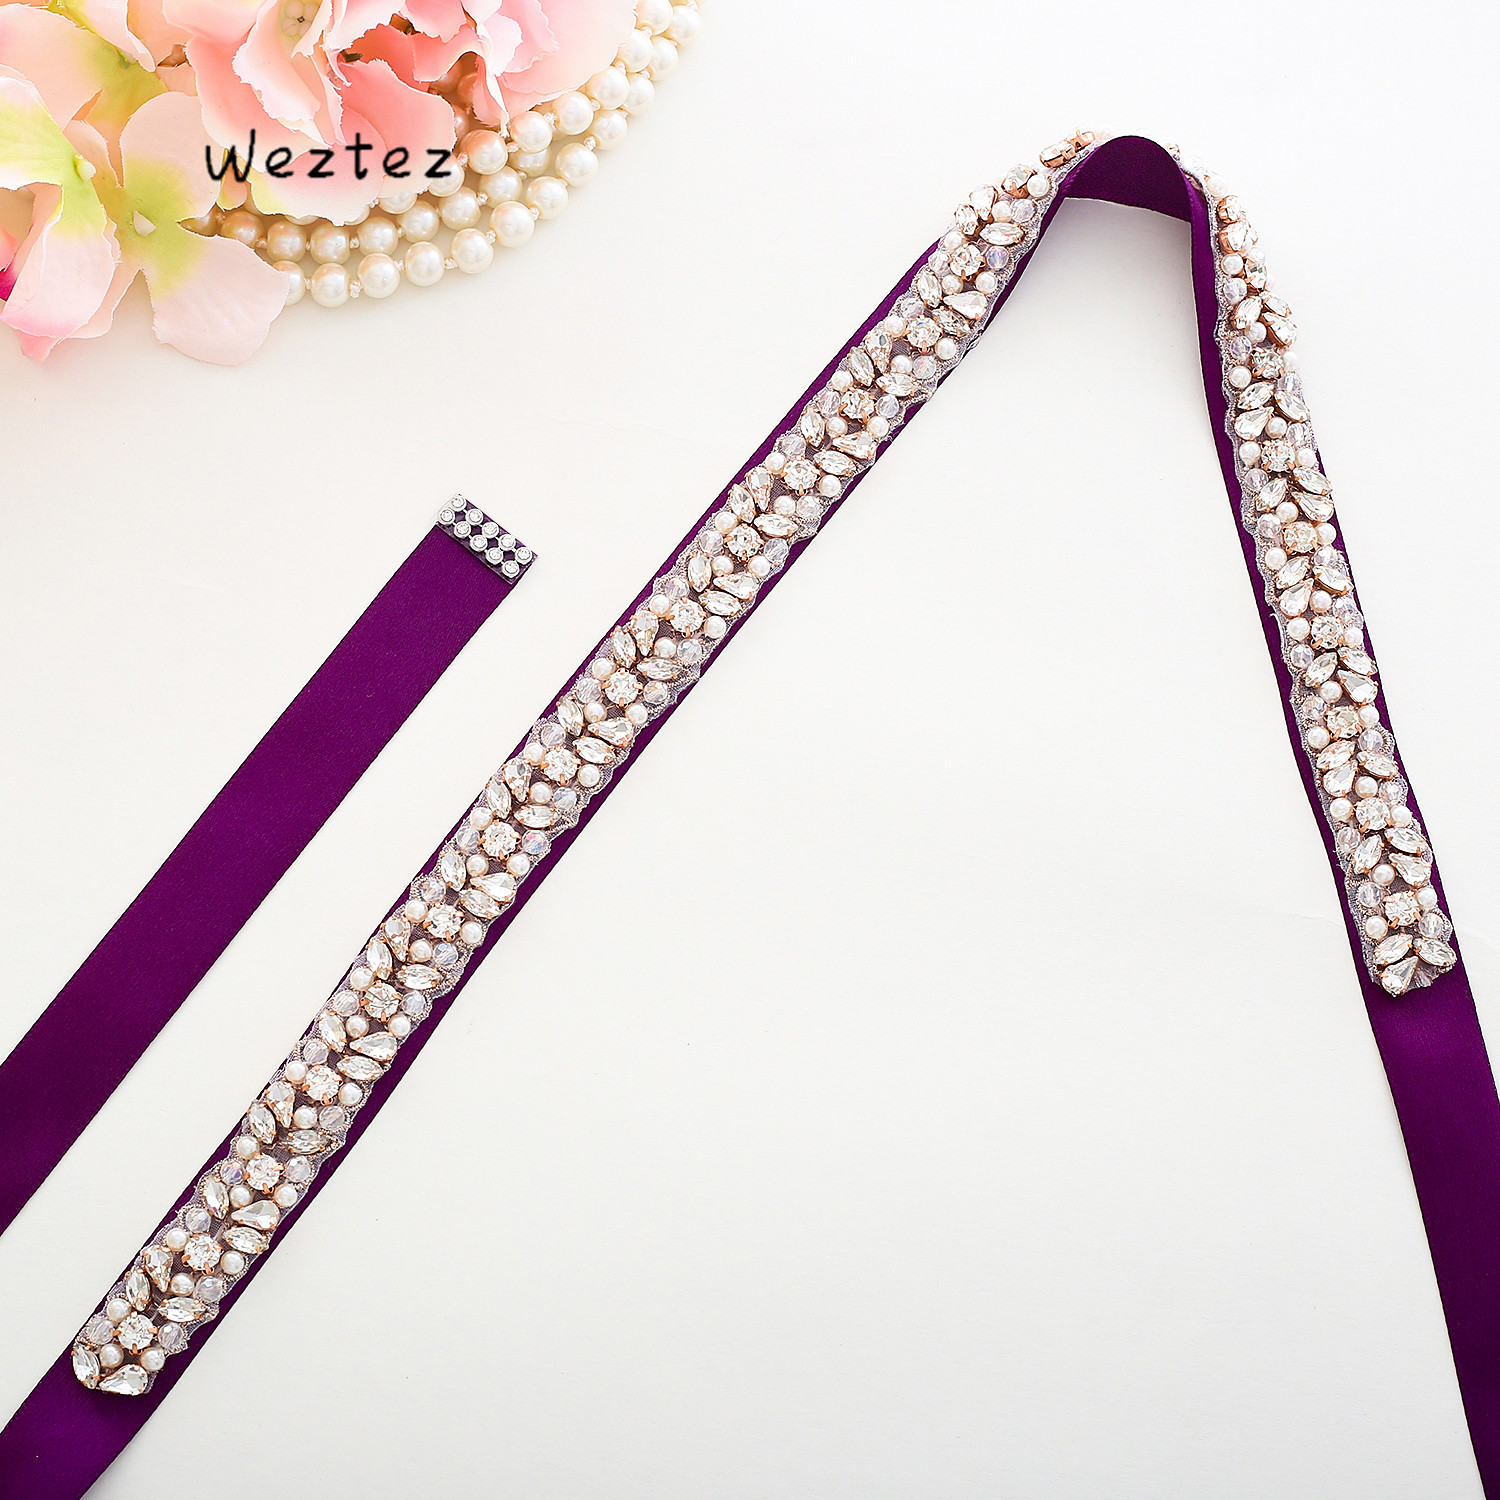 Wedding Belt Bridal Belt  Rhinestones Rose gold Crystal Handmade Diamond Wedding Sash for Bridal Accessories L134BRG